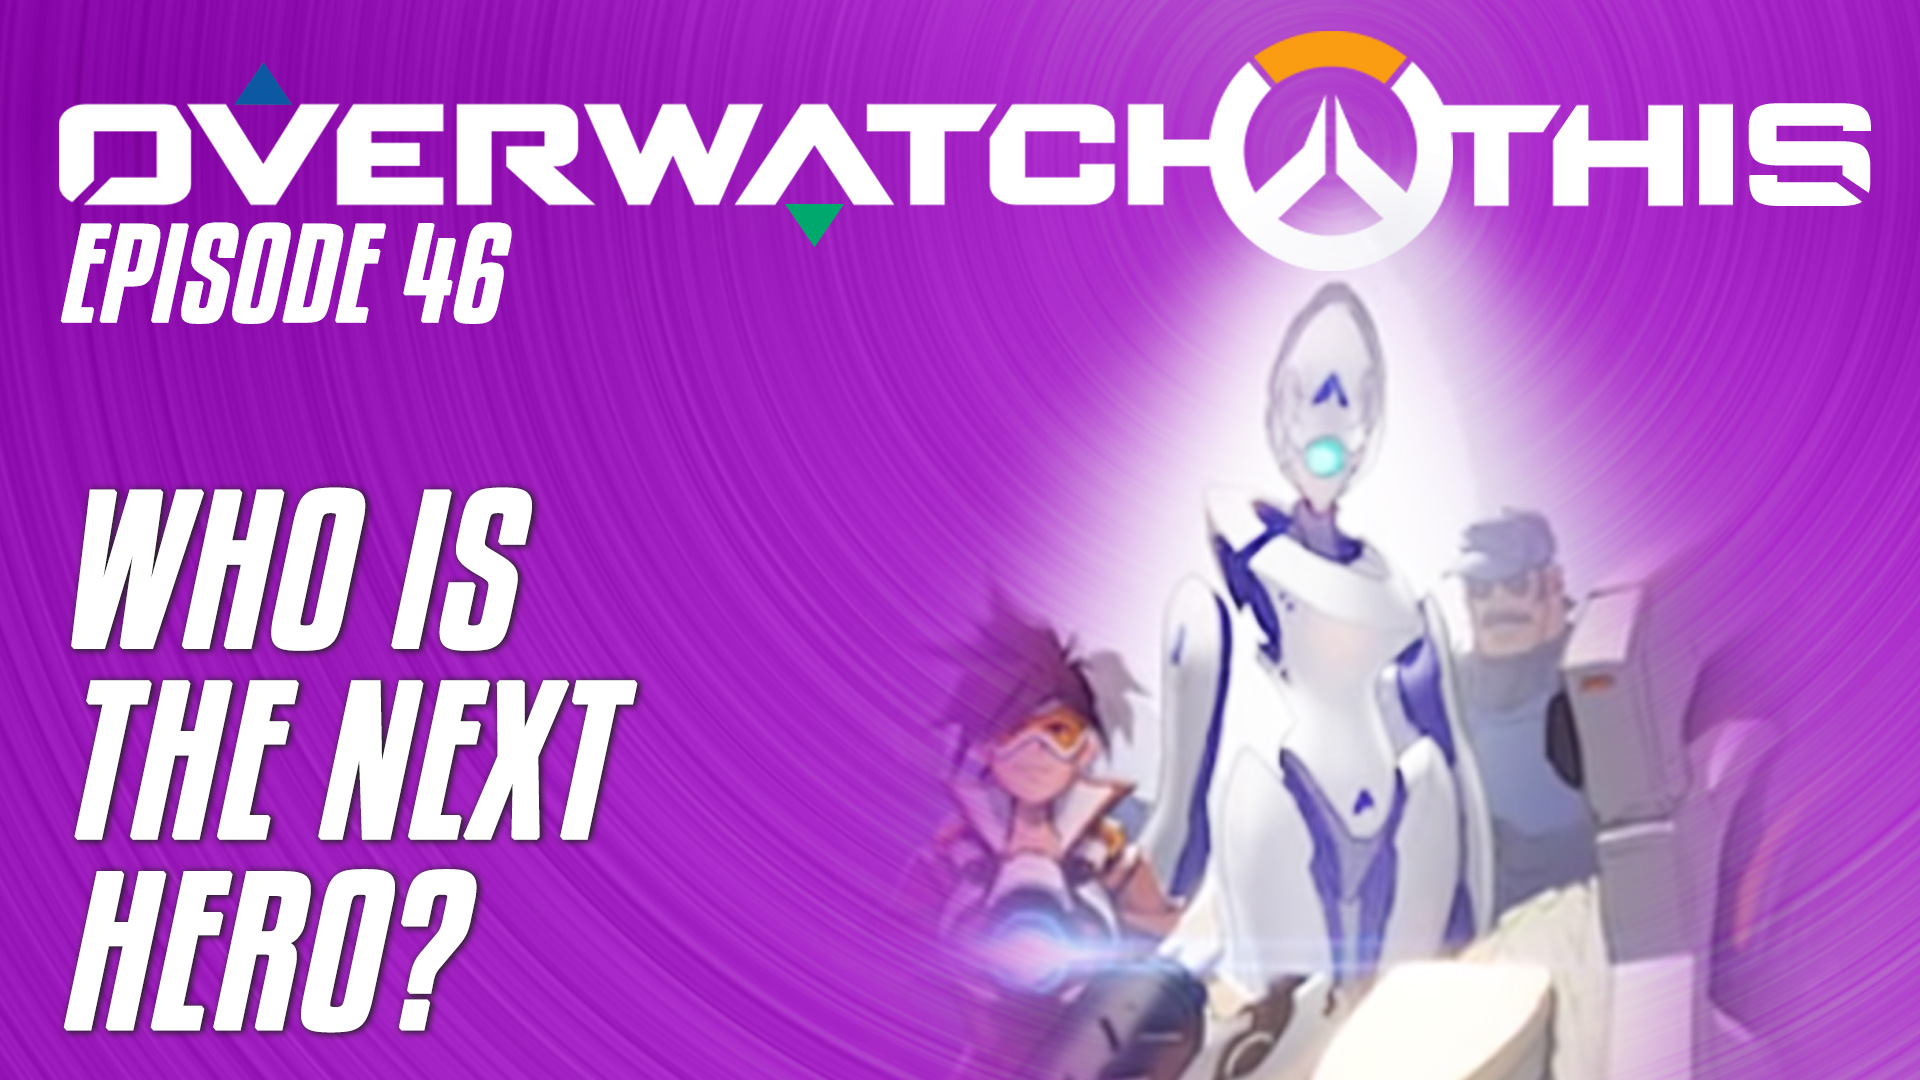 Overwatch This episode 46: who is the next hero?